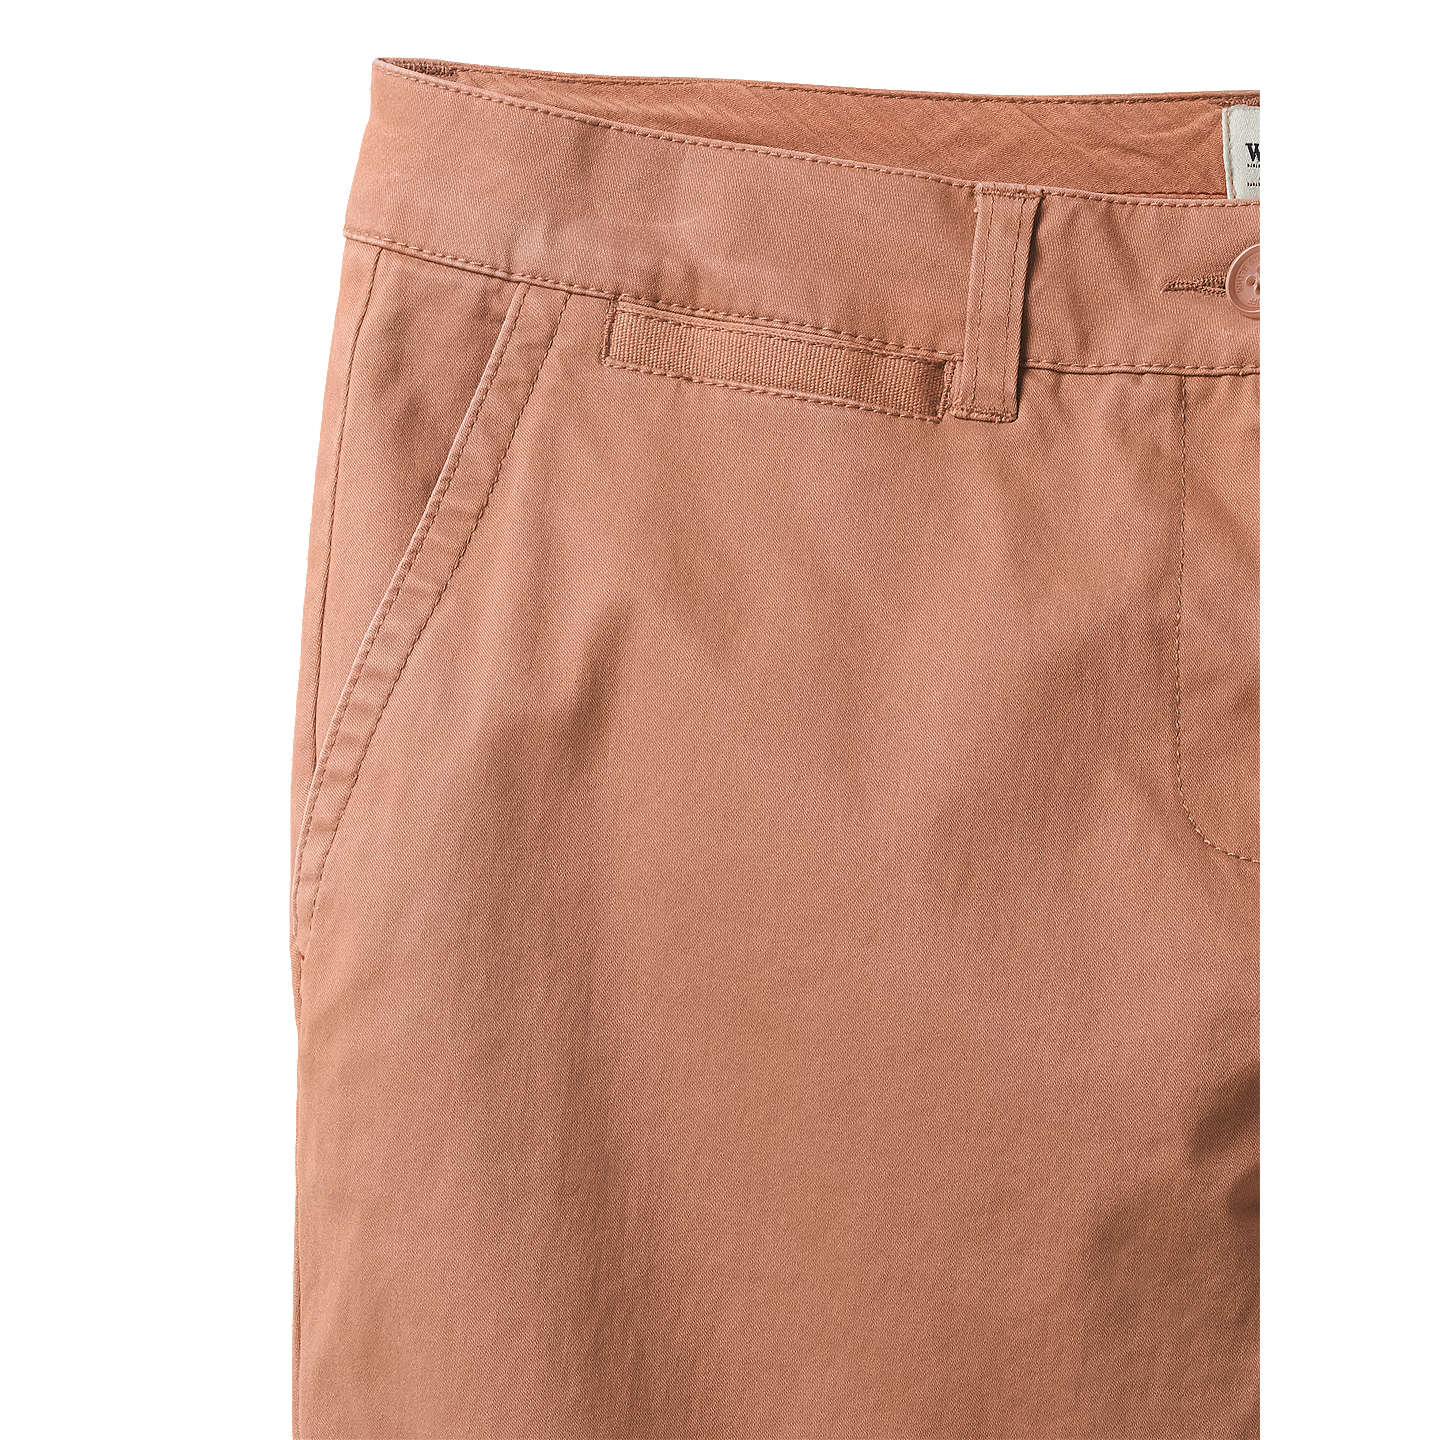 BuyWhite Stuff Linden Chino Trousers, Rust, 6 Online at johnlewis.com